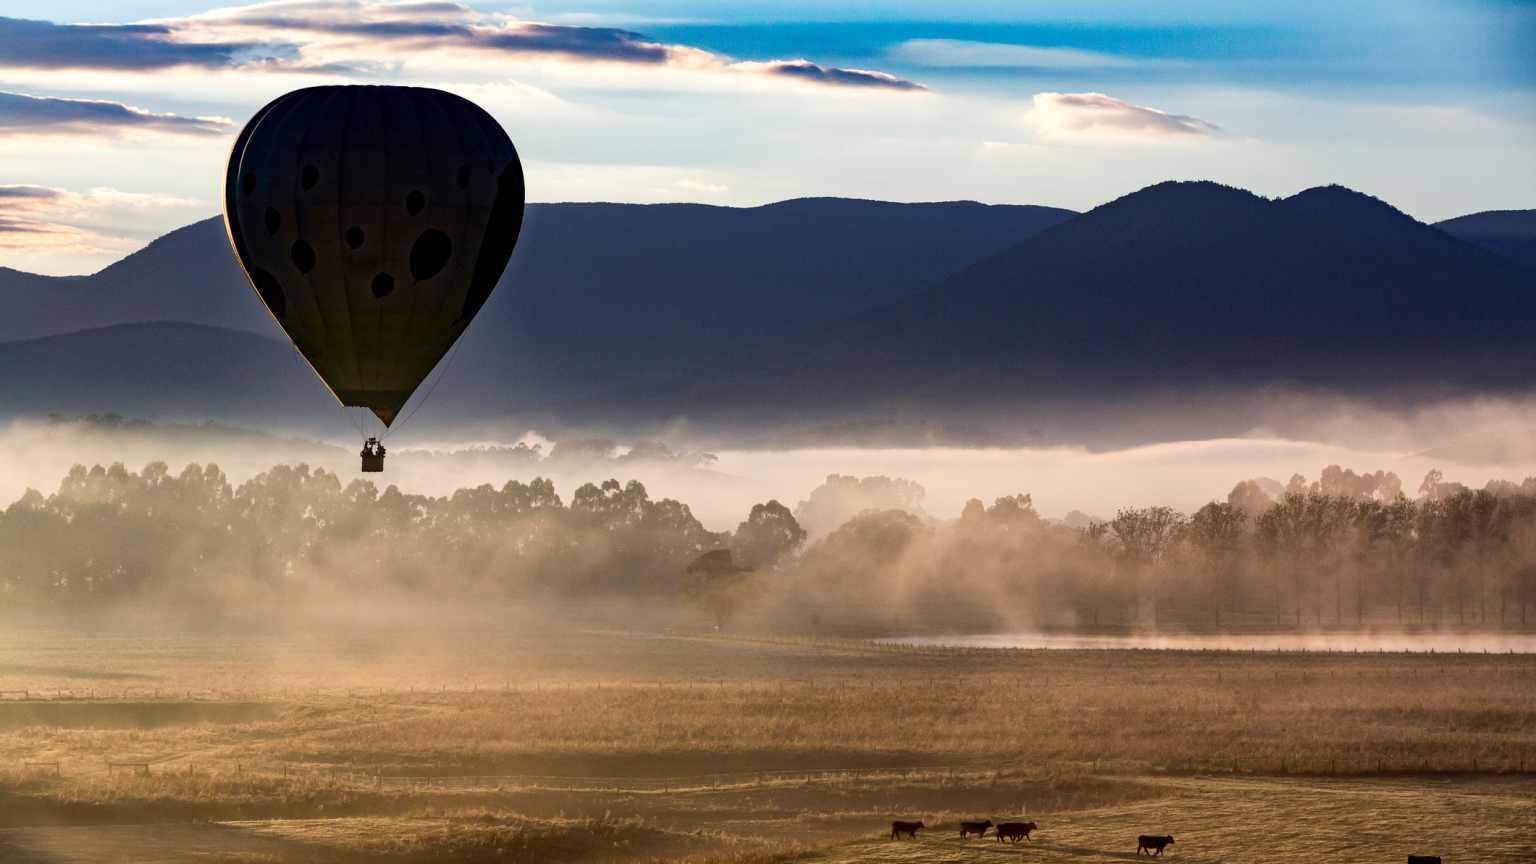 Hot air ballooning is a popular activity for visitors to the Yarra Valley, one of Victoria's wine growing regions.  Passengers on winter flights are often rewarded with wonderfully misty mornings.